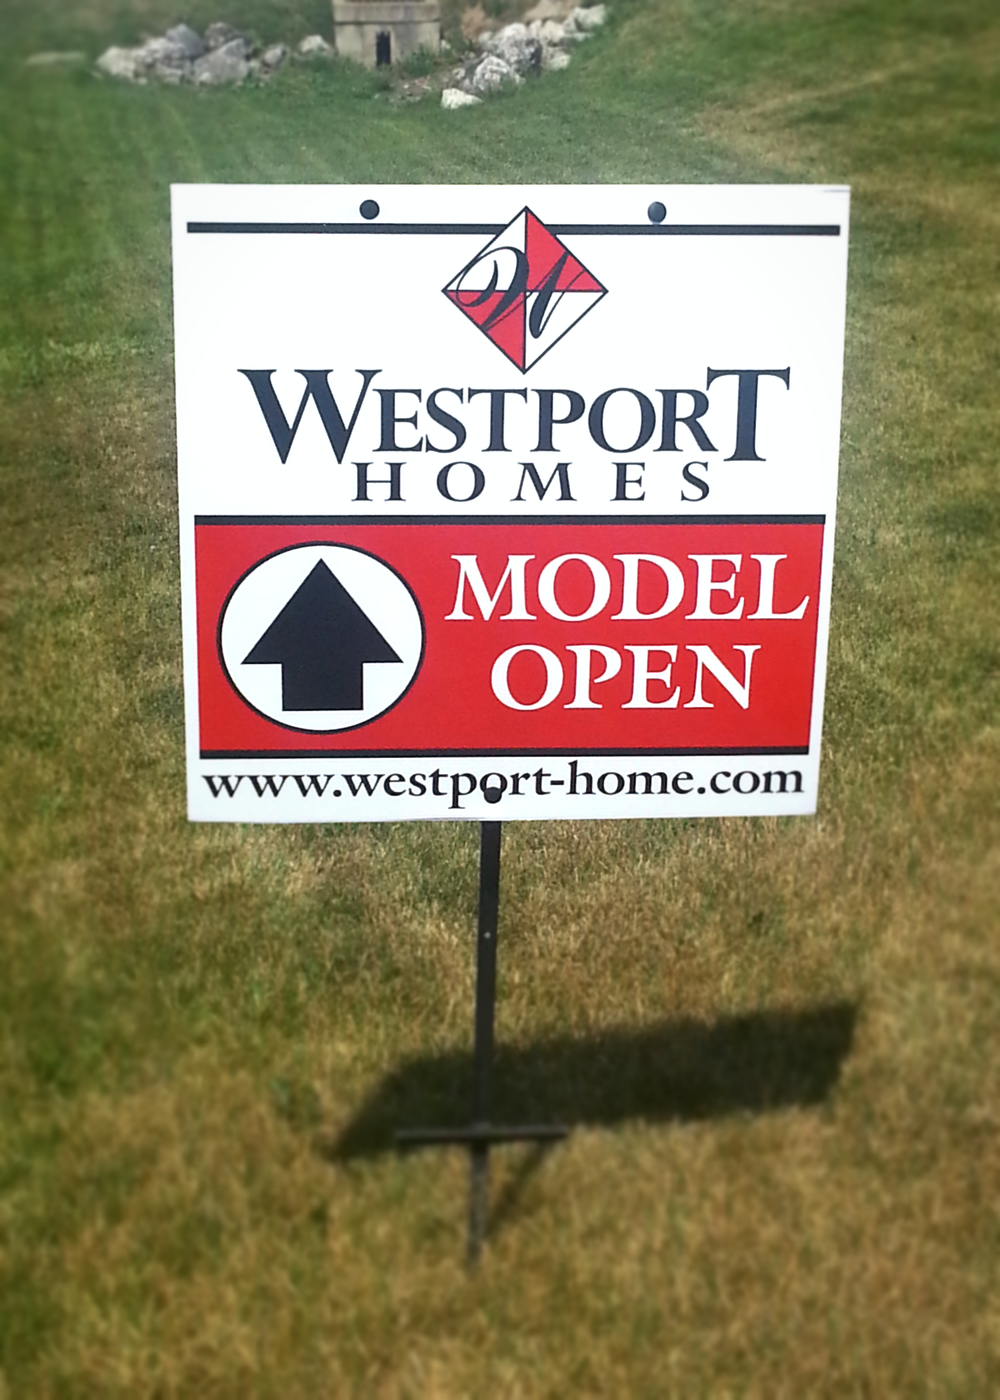 2015.06.05 Westport Homes Directional.jpg